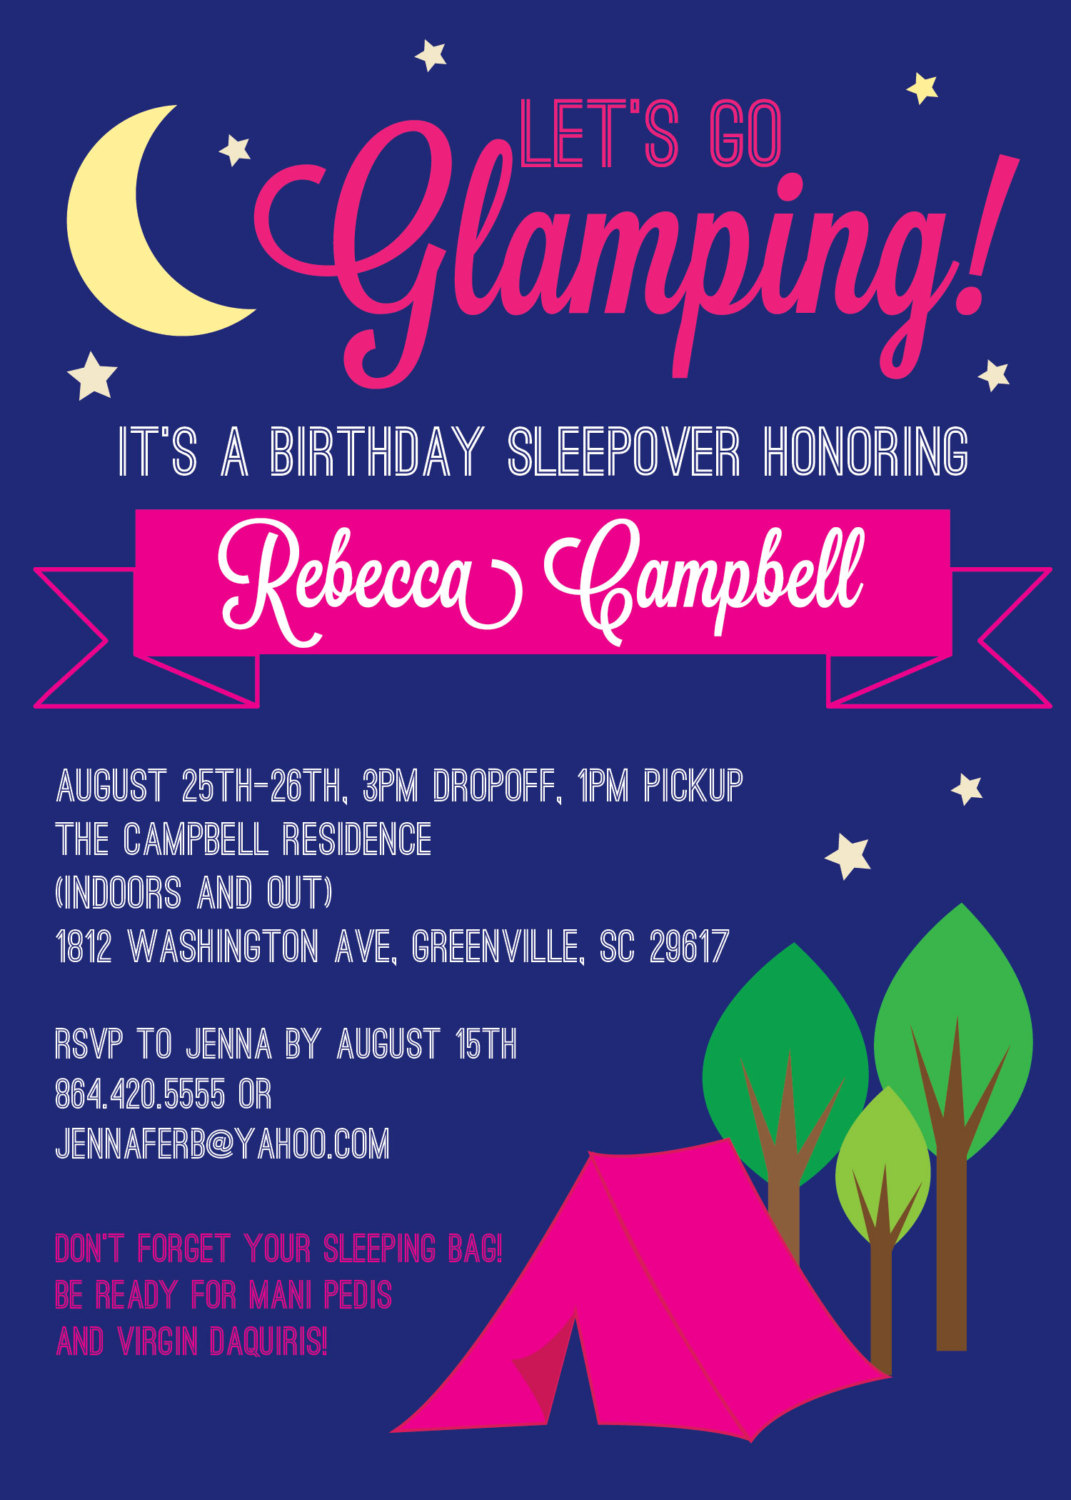 Glamping invitations glam glamour camping birthday bachelorette glamping invitations glam glamour camping birthday bachelorette girl filmwisefo